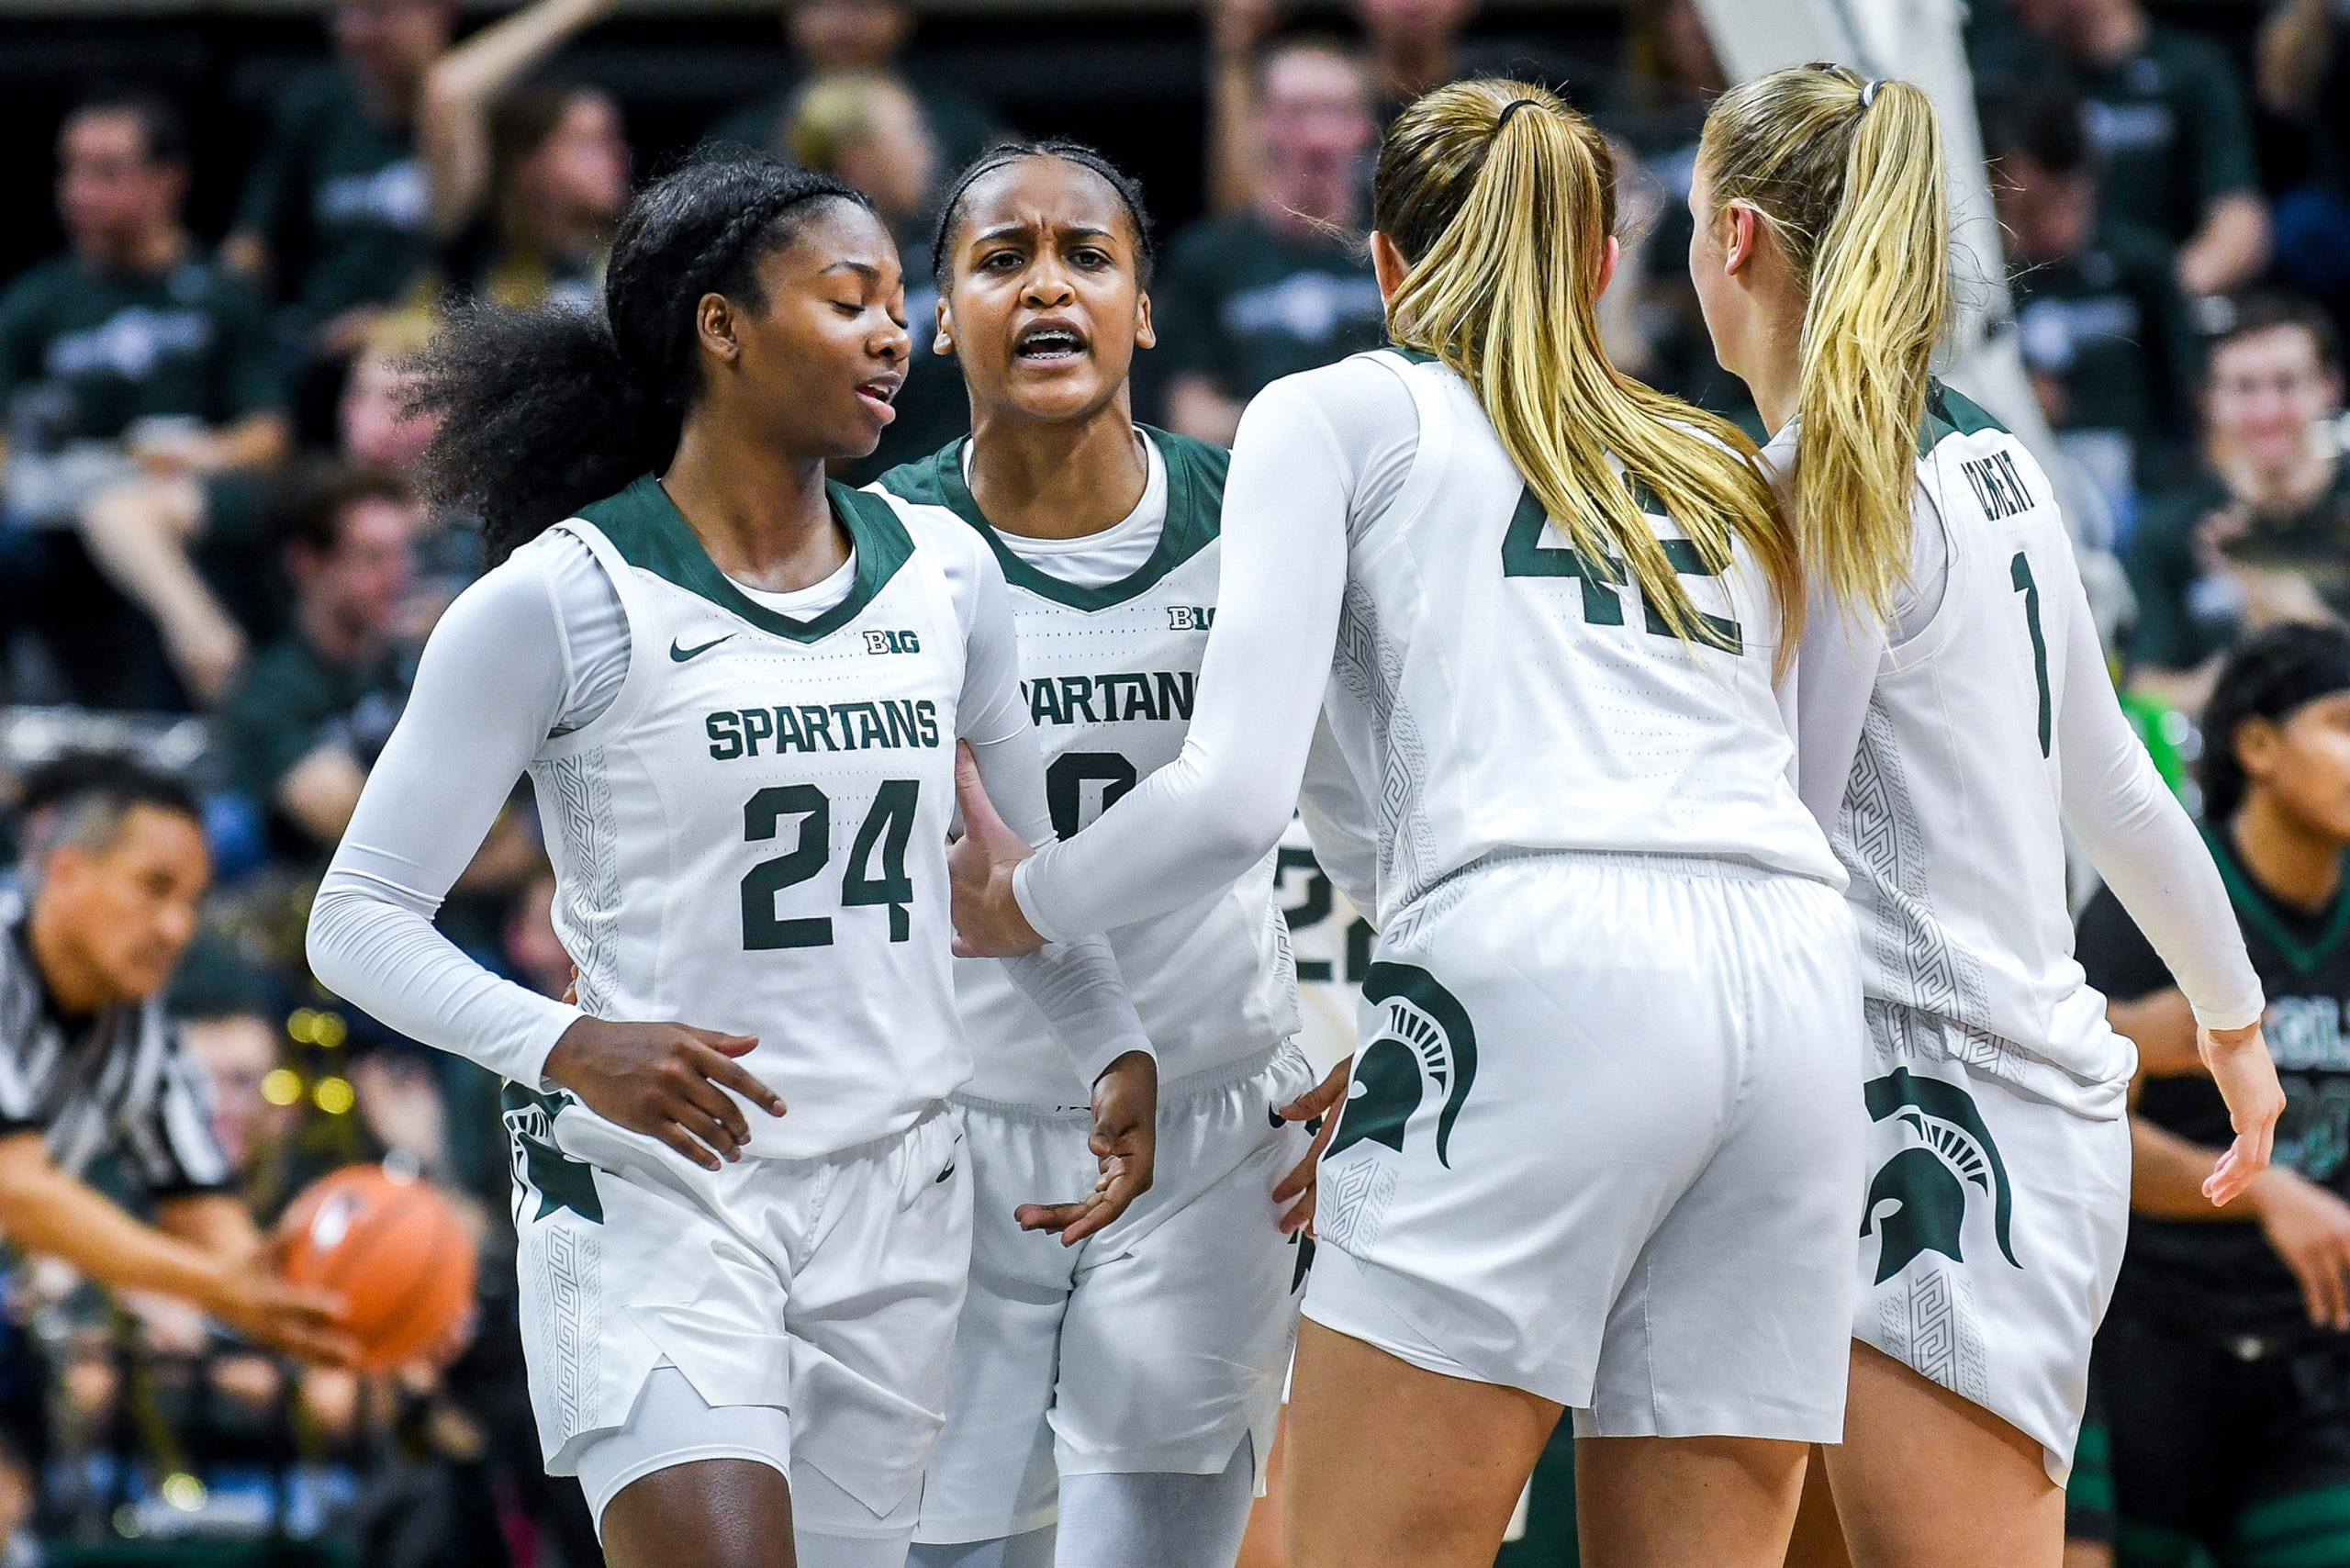 From left, Michigan State's Nia Clouden, Shay Colley, Kayla Belles and Tory Ozment celebrate after taking the lead against Eastern Michigan during the second quarter on Tuesday, Nov. 5, 2019, at the Breslin Center in East Lansing.